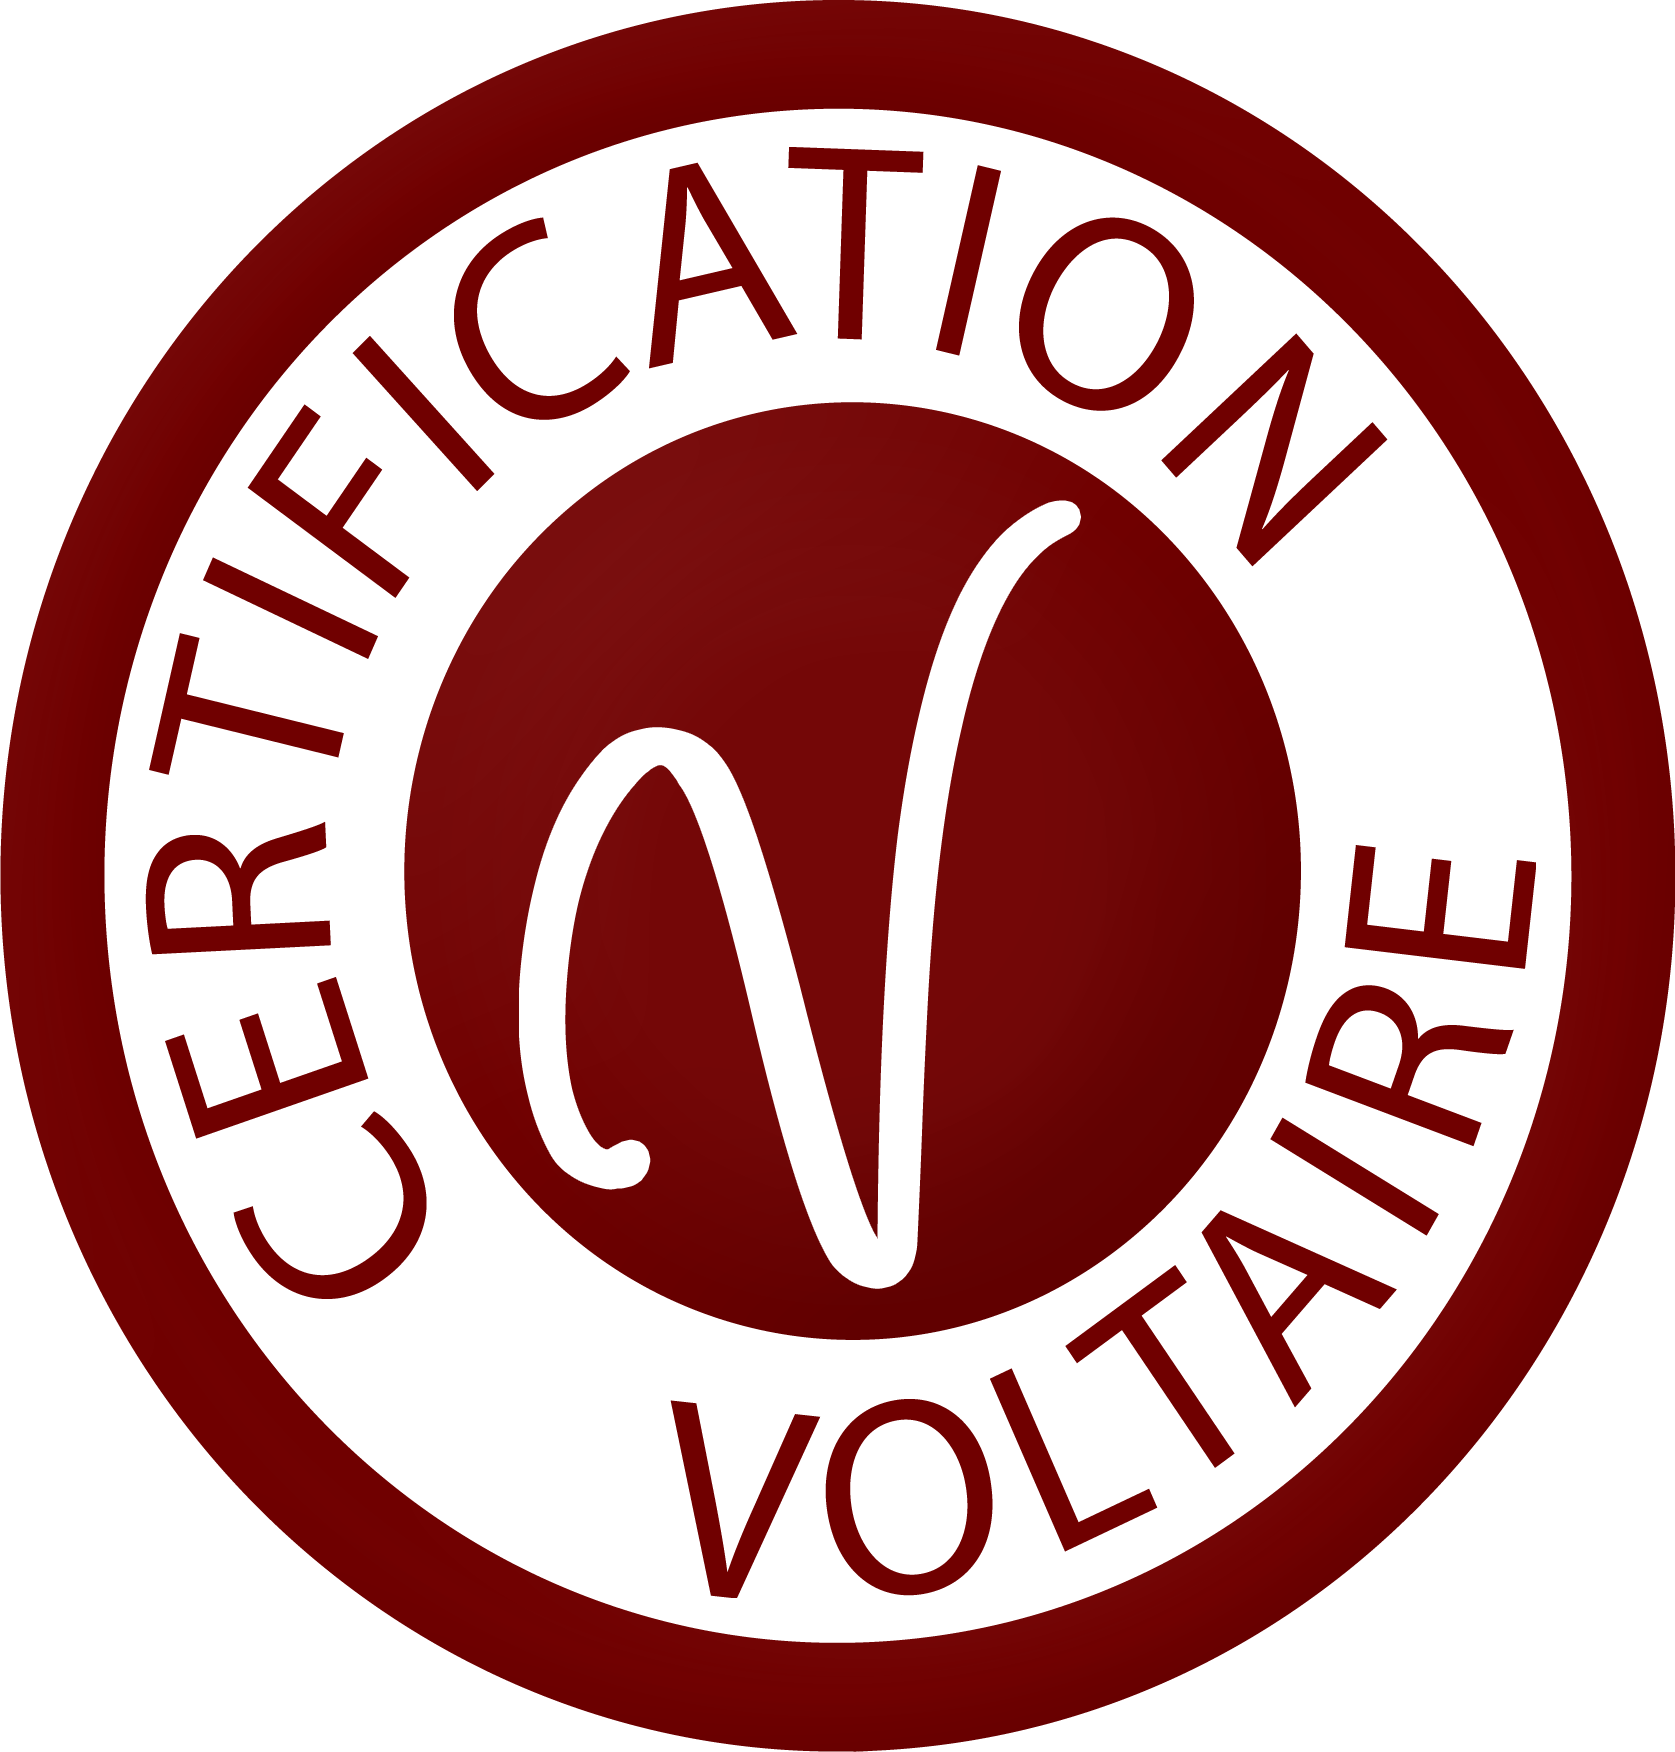 logocertifvoltaire.png